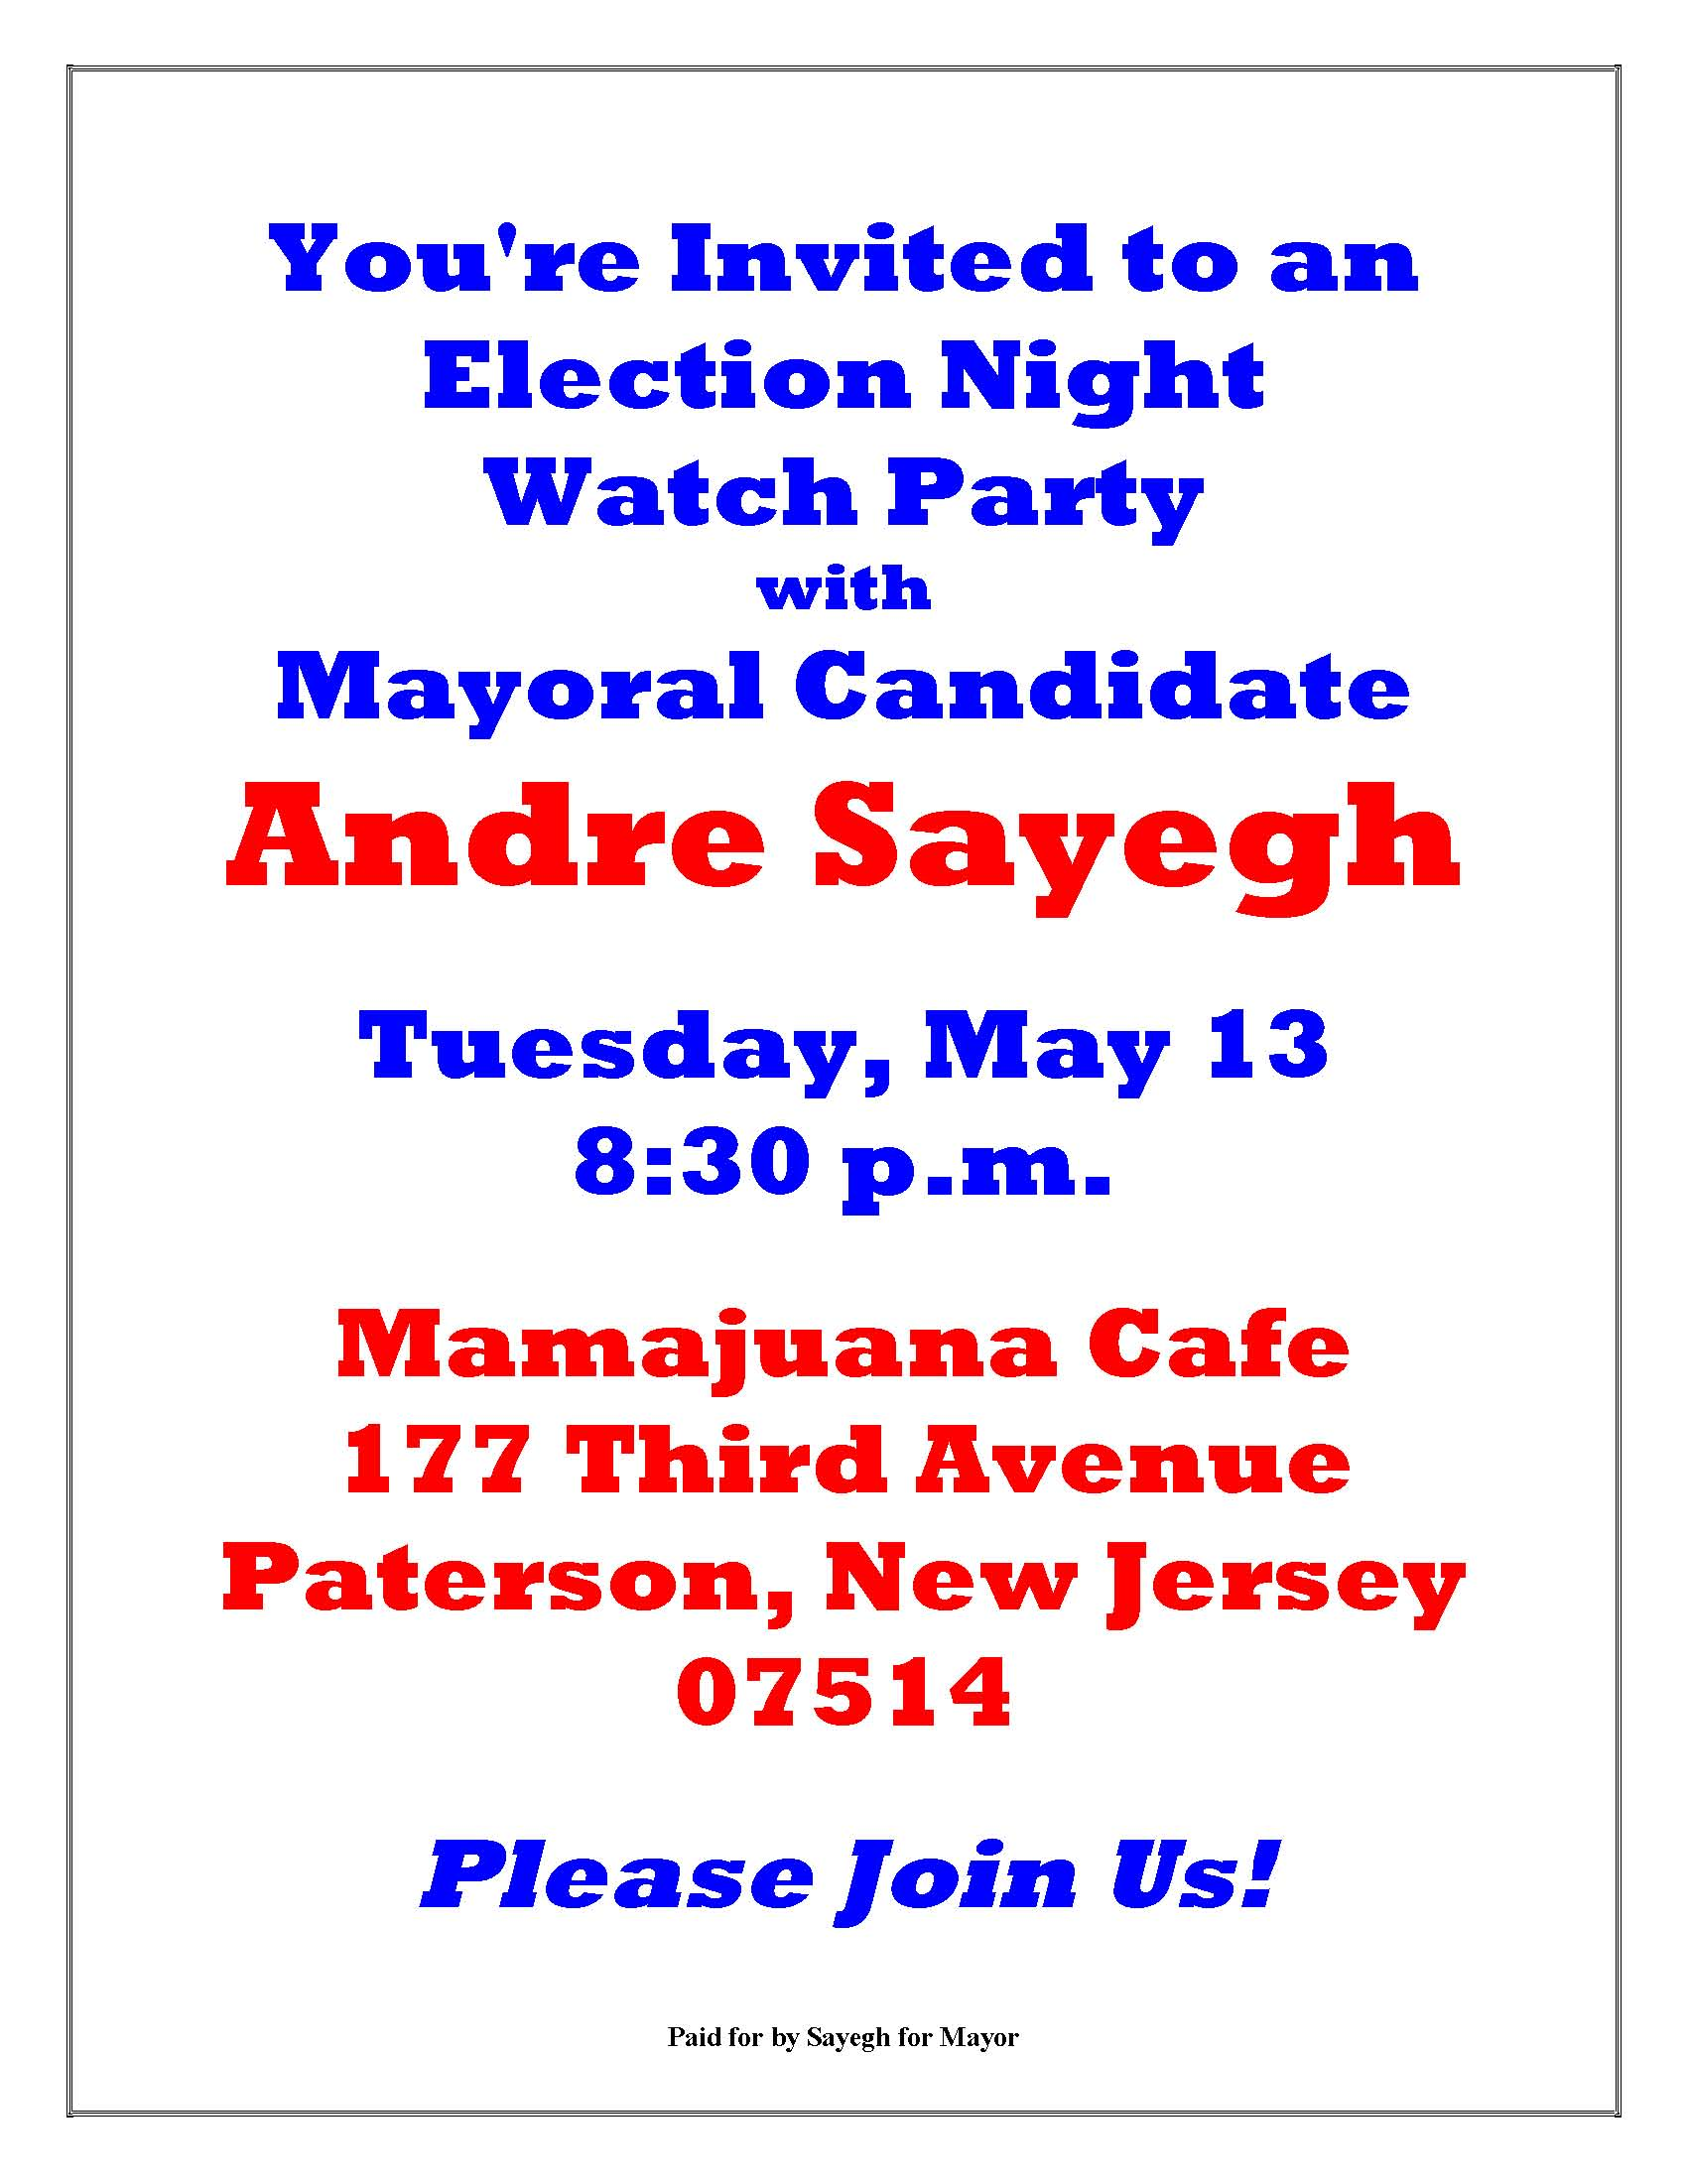 Election_Night_Flyer.jpg